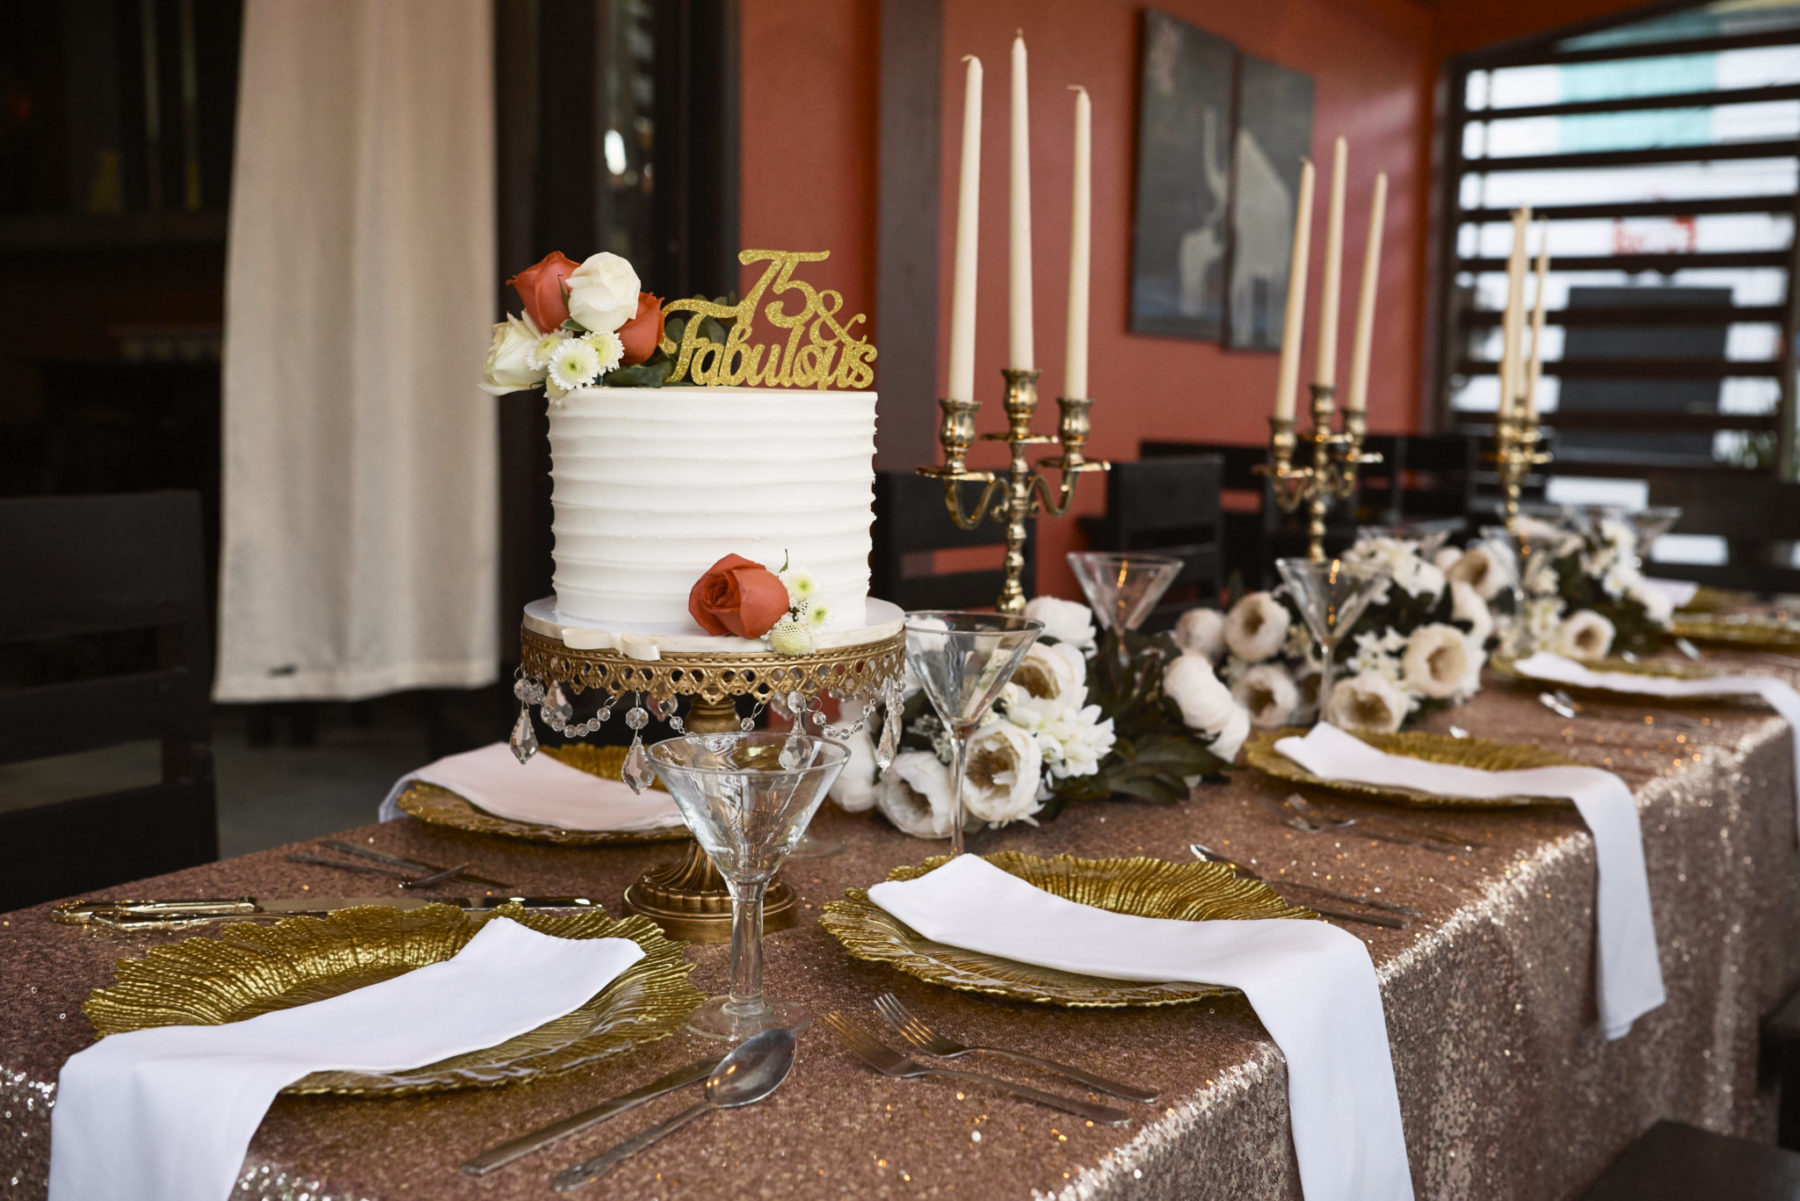 Gold and White Birthday Party Arrangements at Ambergris Caye Belize